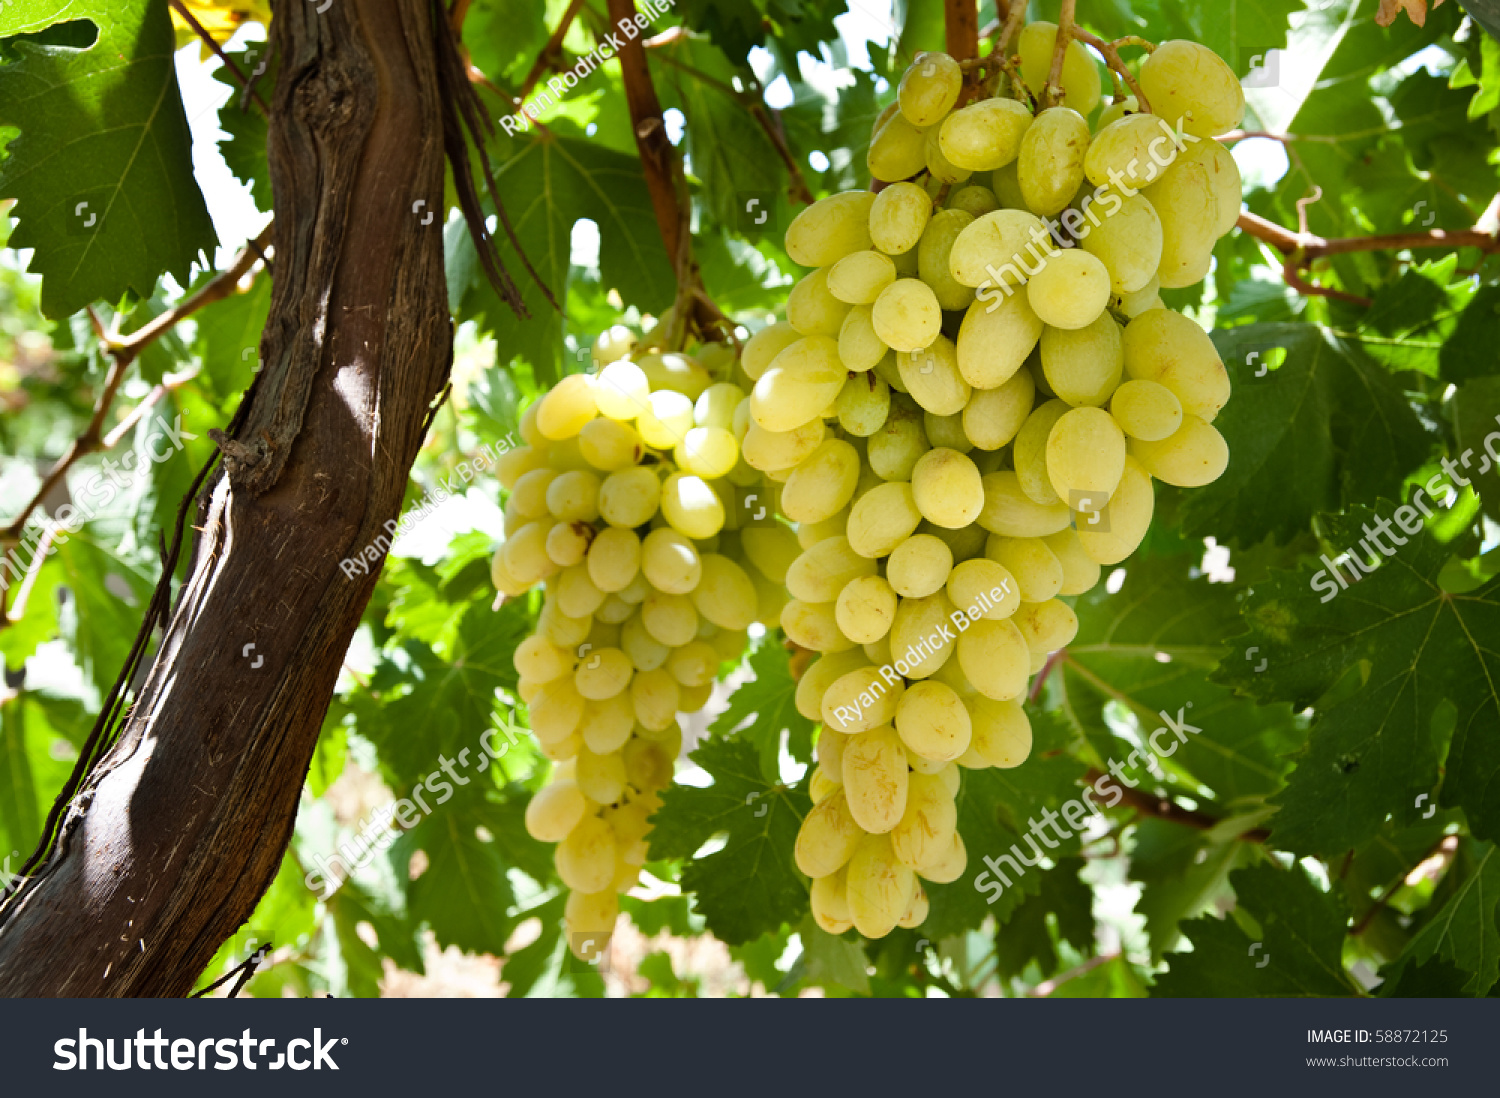 Clusters Of White Table Grapes Hang From The Vine On A Trellis In Hebron, Palestine. Stock Photo 58872125 : Shutterstock